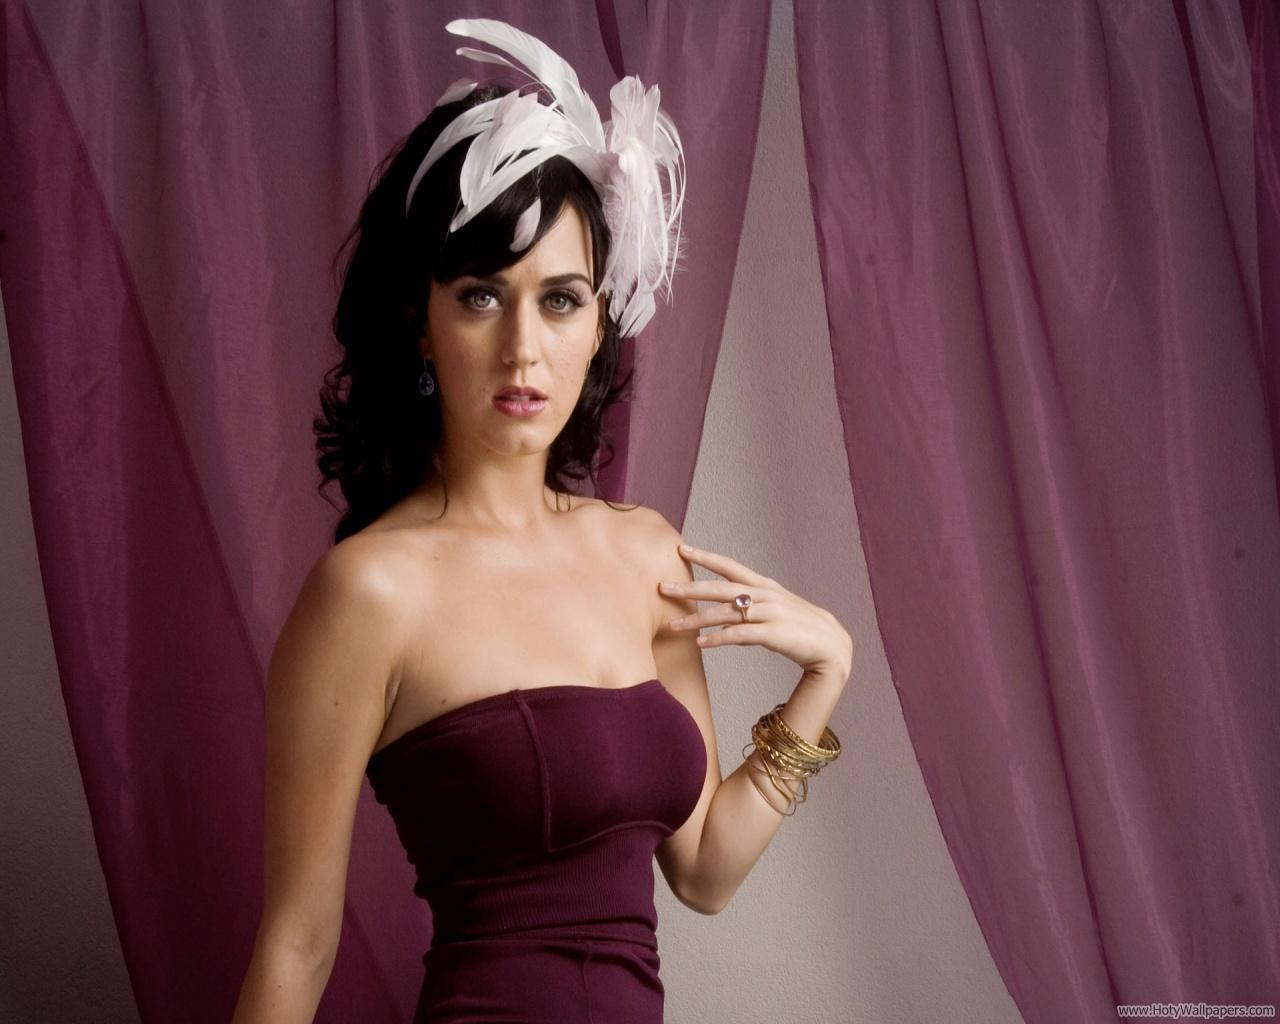 http://1.bp.blogspot.com/-BvUD13Uaung/To1sU9EaKXI/AAAAAAAALgI/NH--B9L2zqc/s1600/katy_perry_glam_wallpaper.jpg